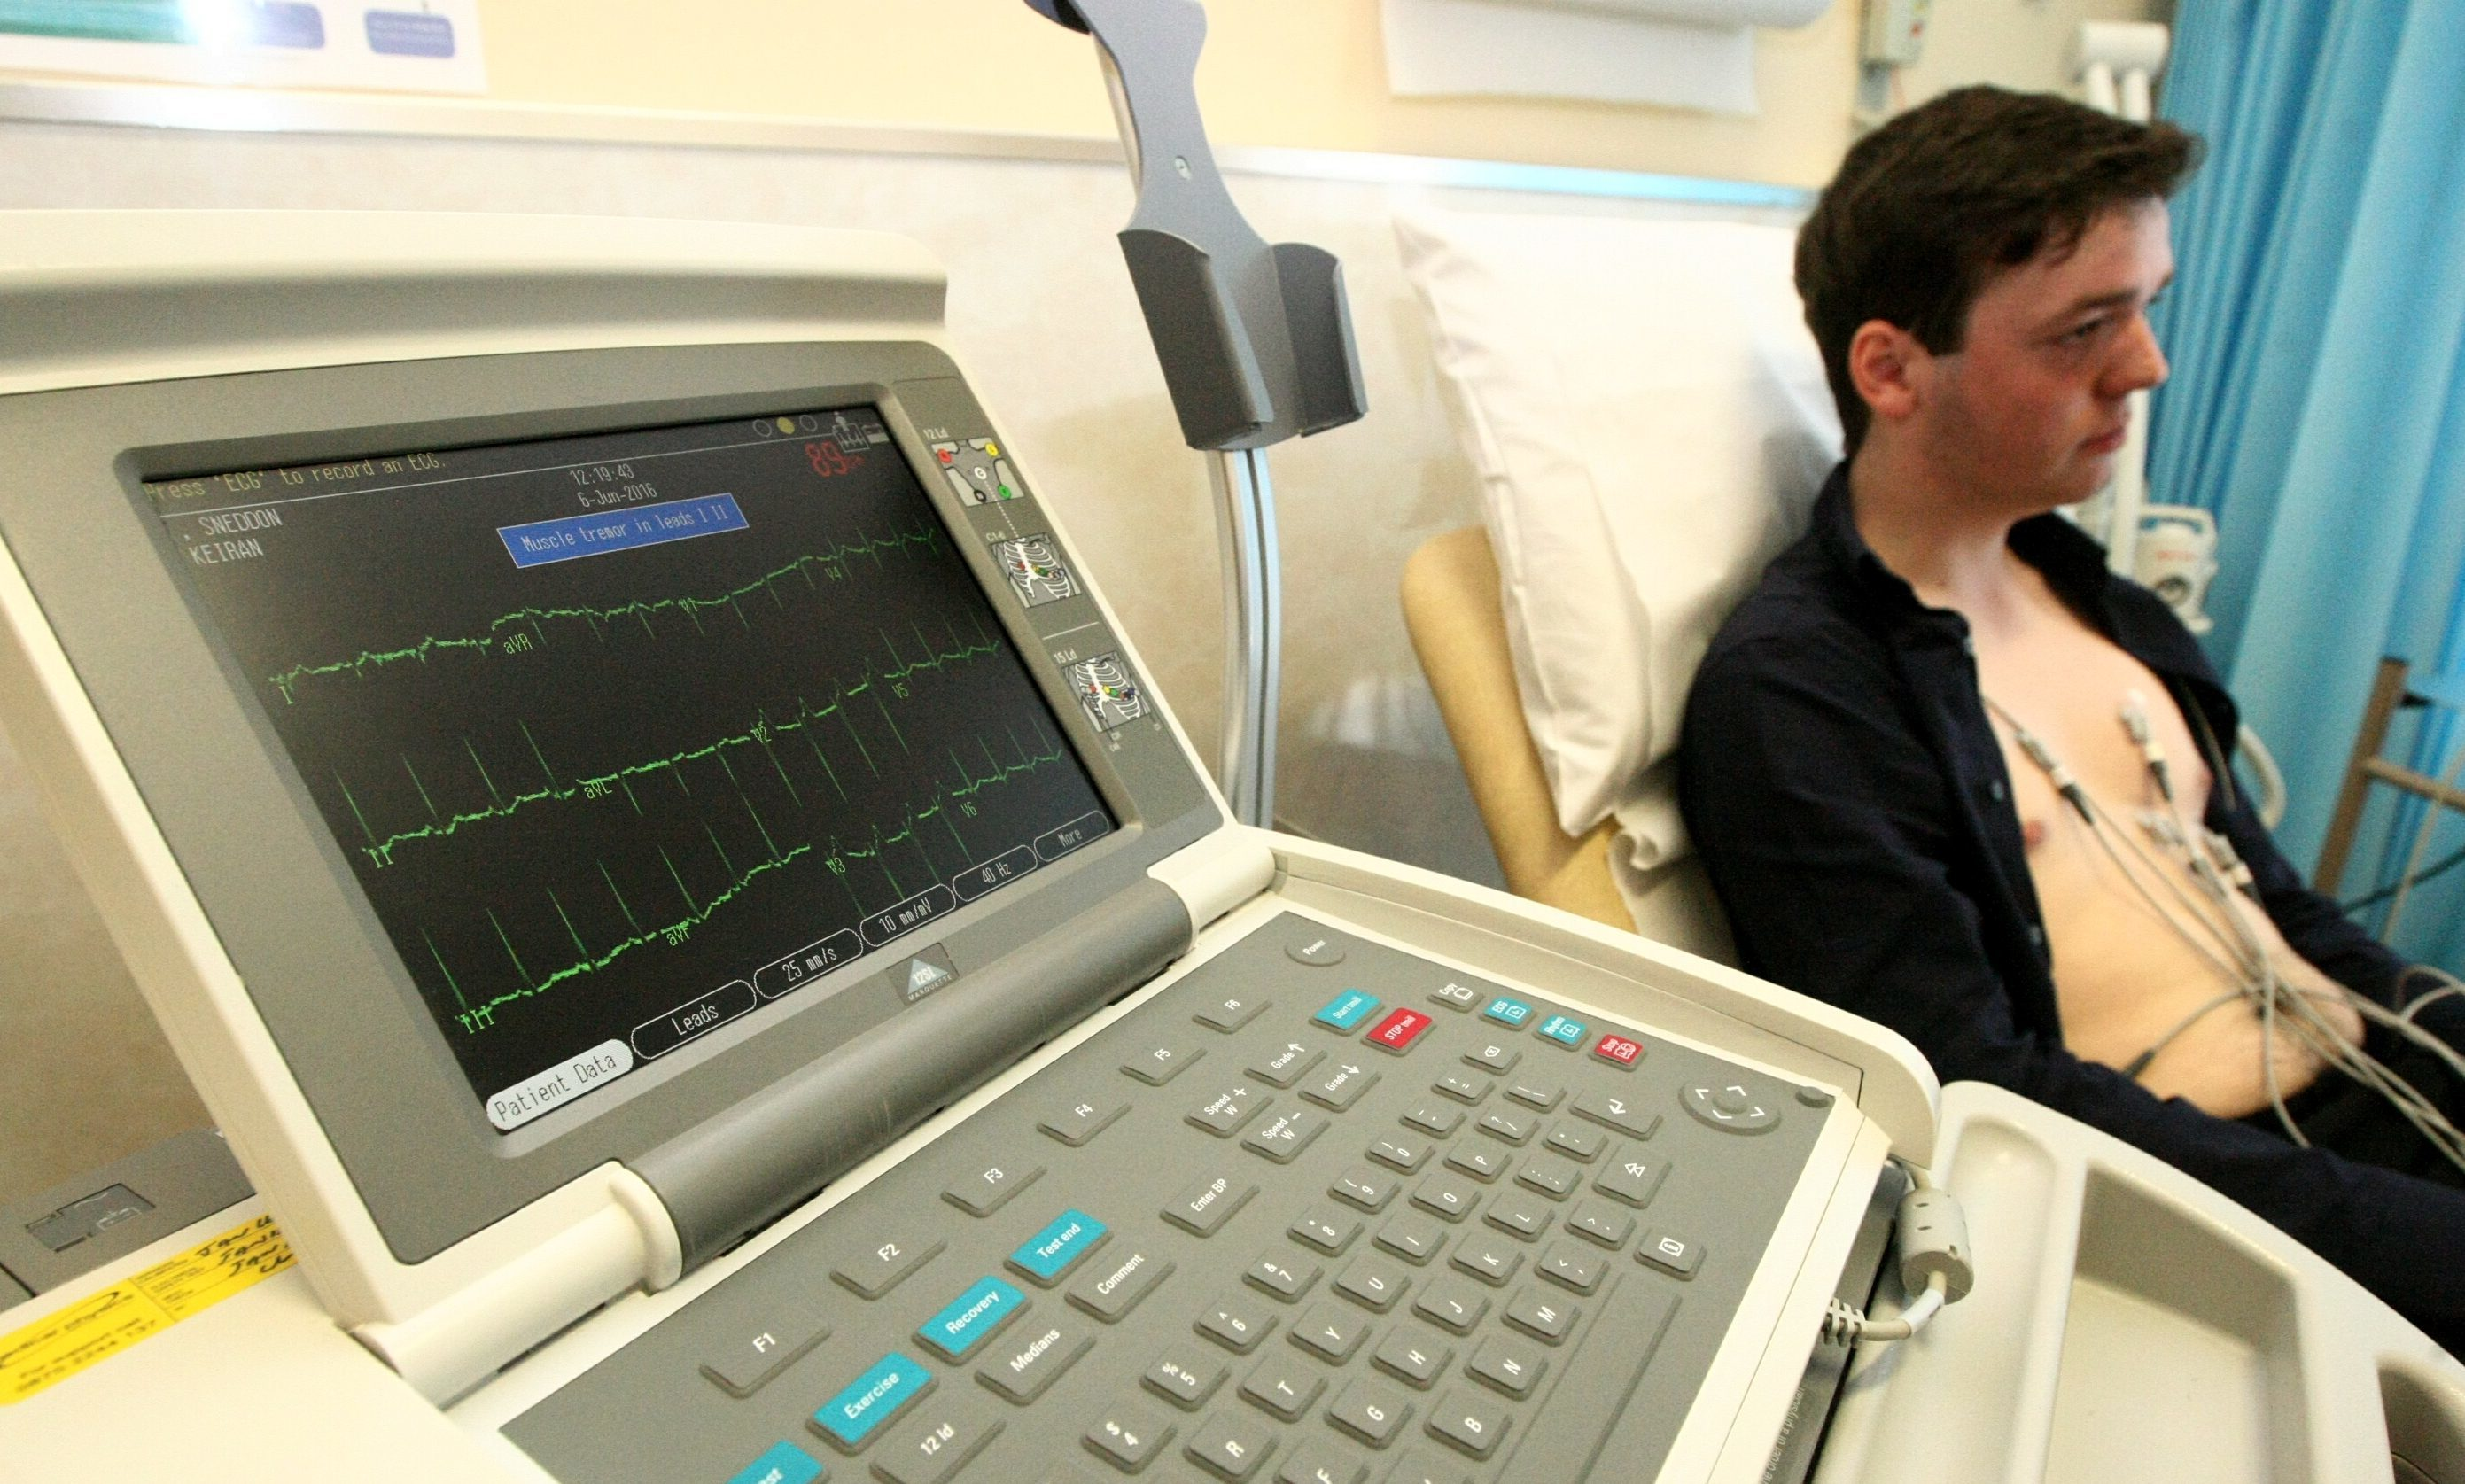 Ciaran Sneddon is hooked up to the ECG monitor to see the effects of consuming energy drinks.